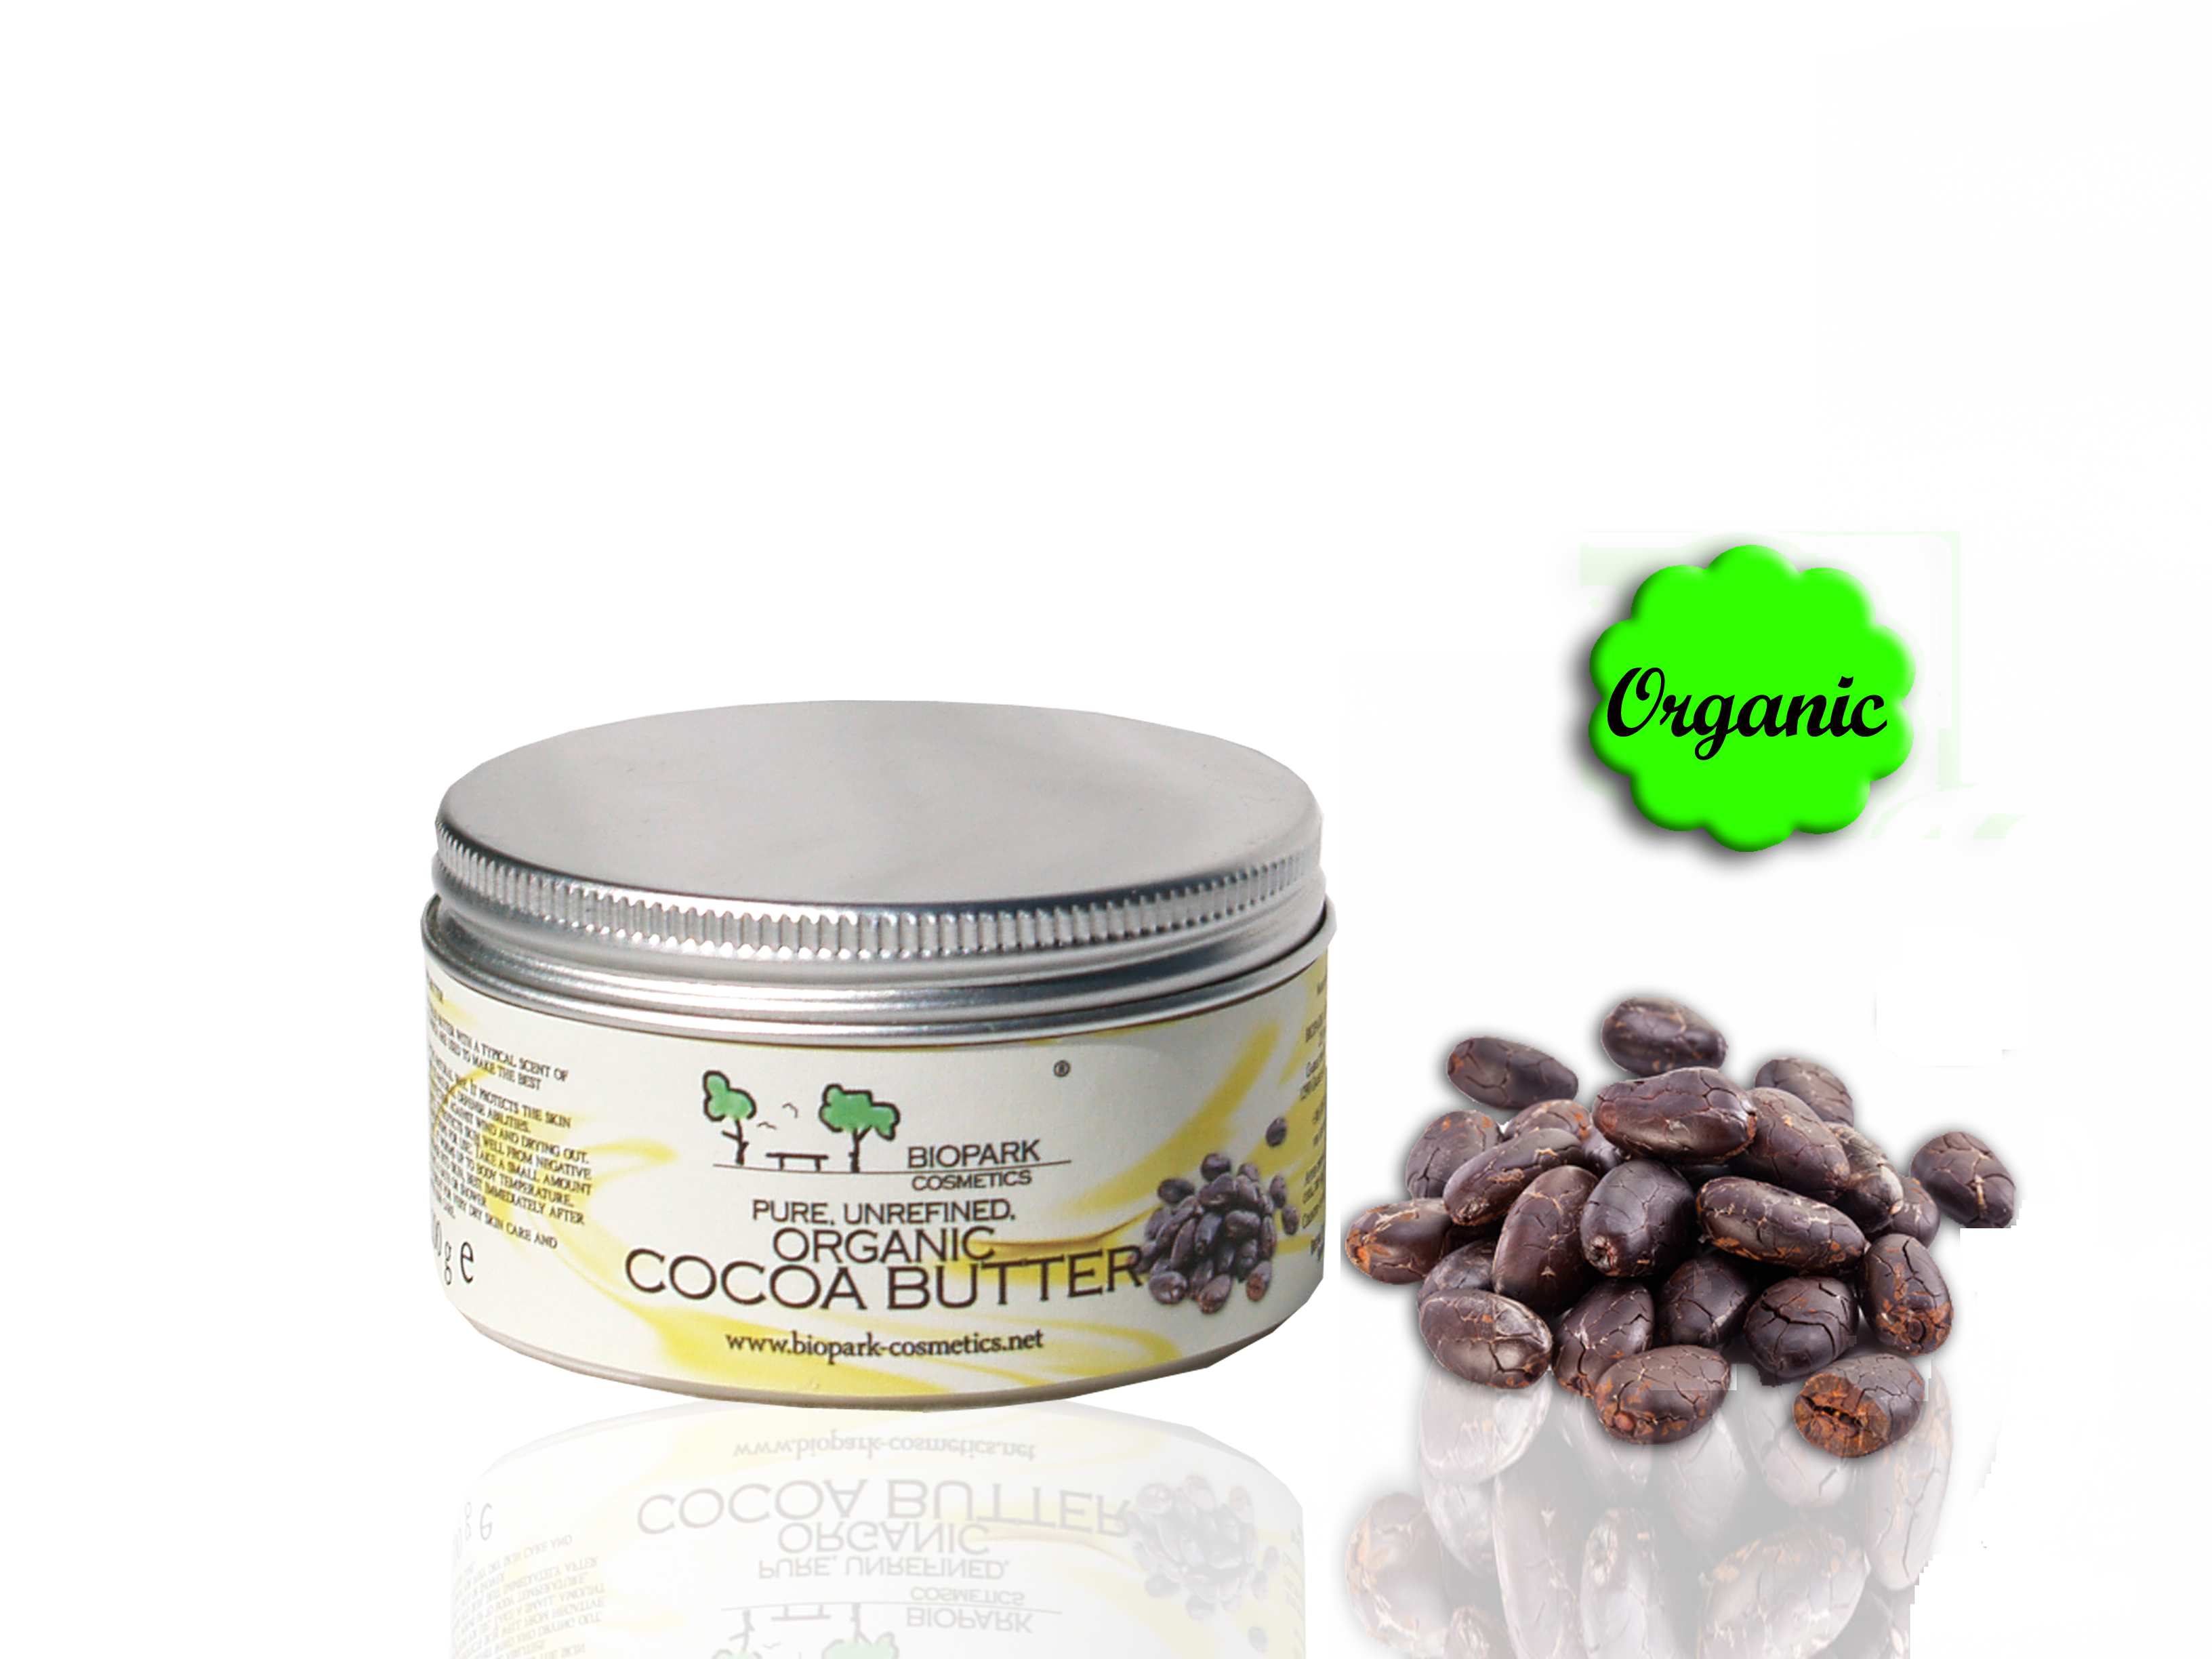 Cocoa-Butter-Organic-100g